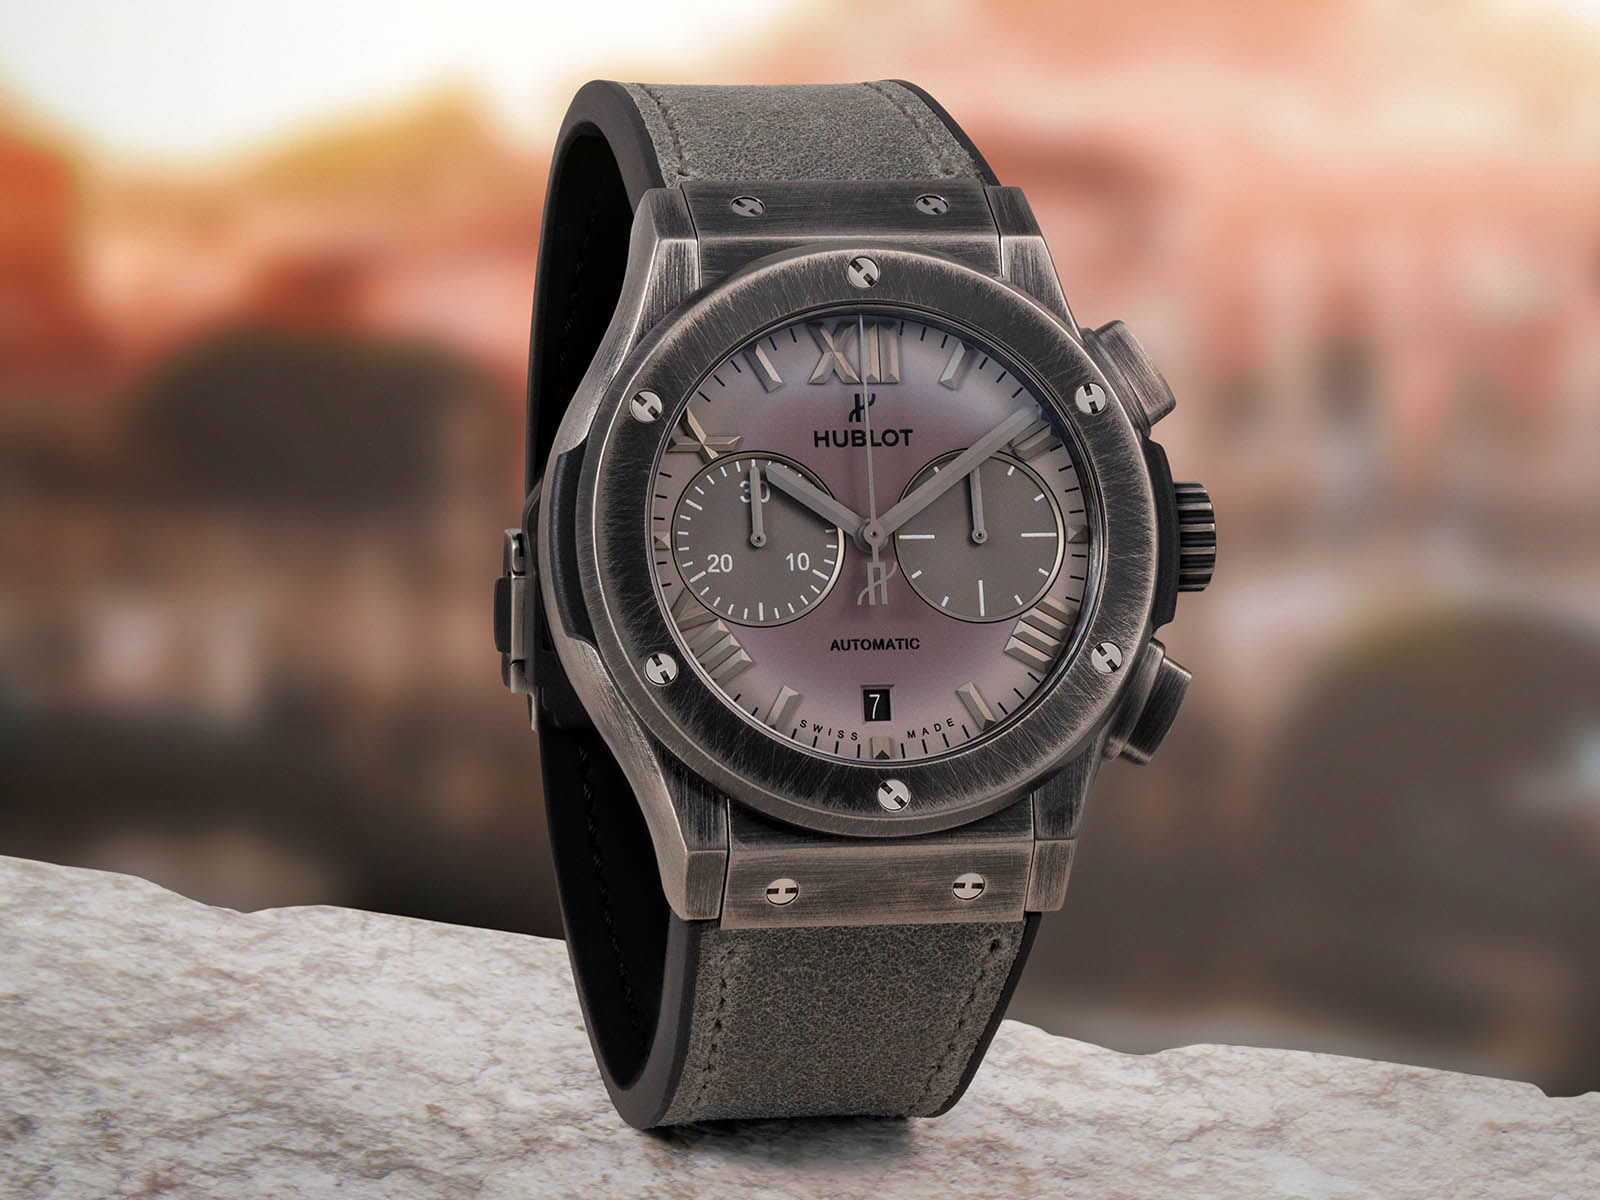 521-nx-4610-vr-rom20-hublot-classic-fusion-chronograph-special-edition-boutique-roma-4.jpg